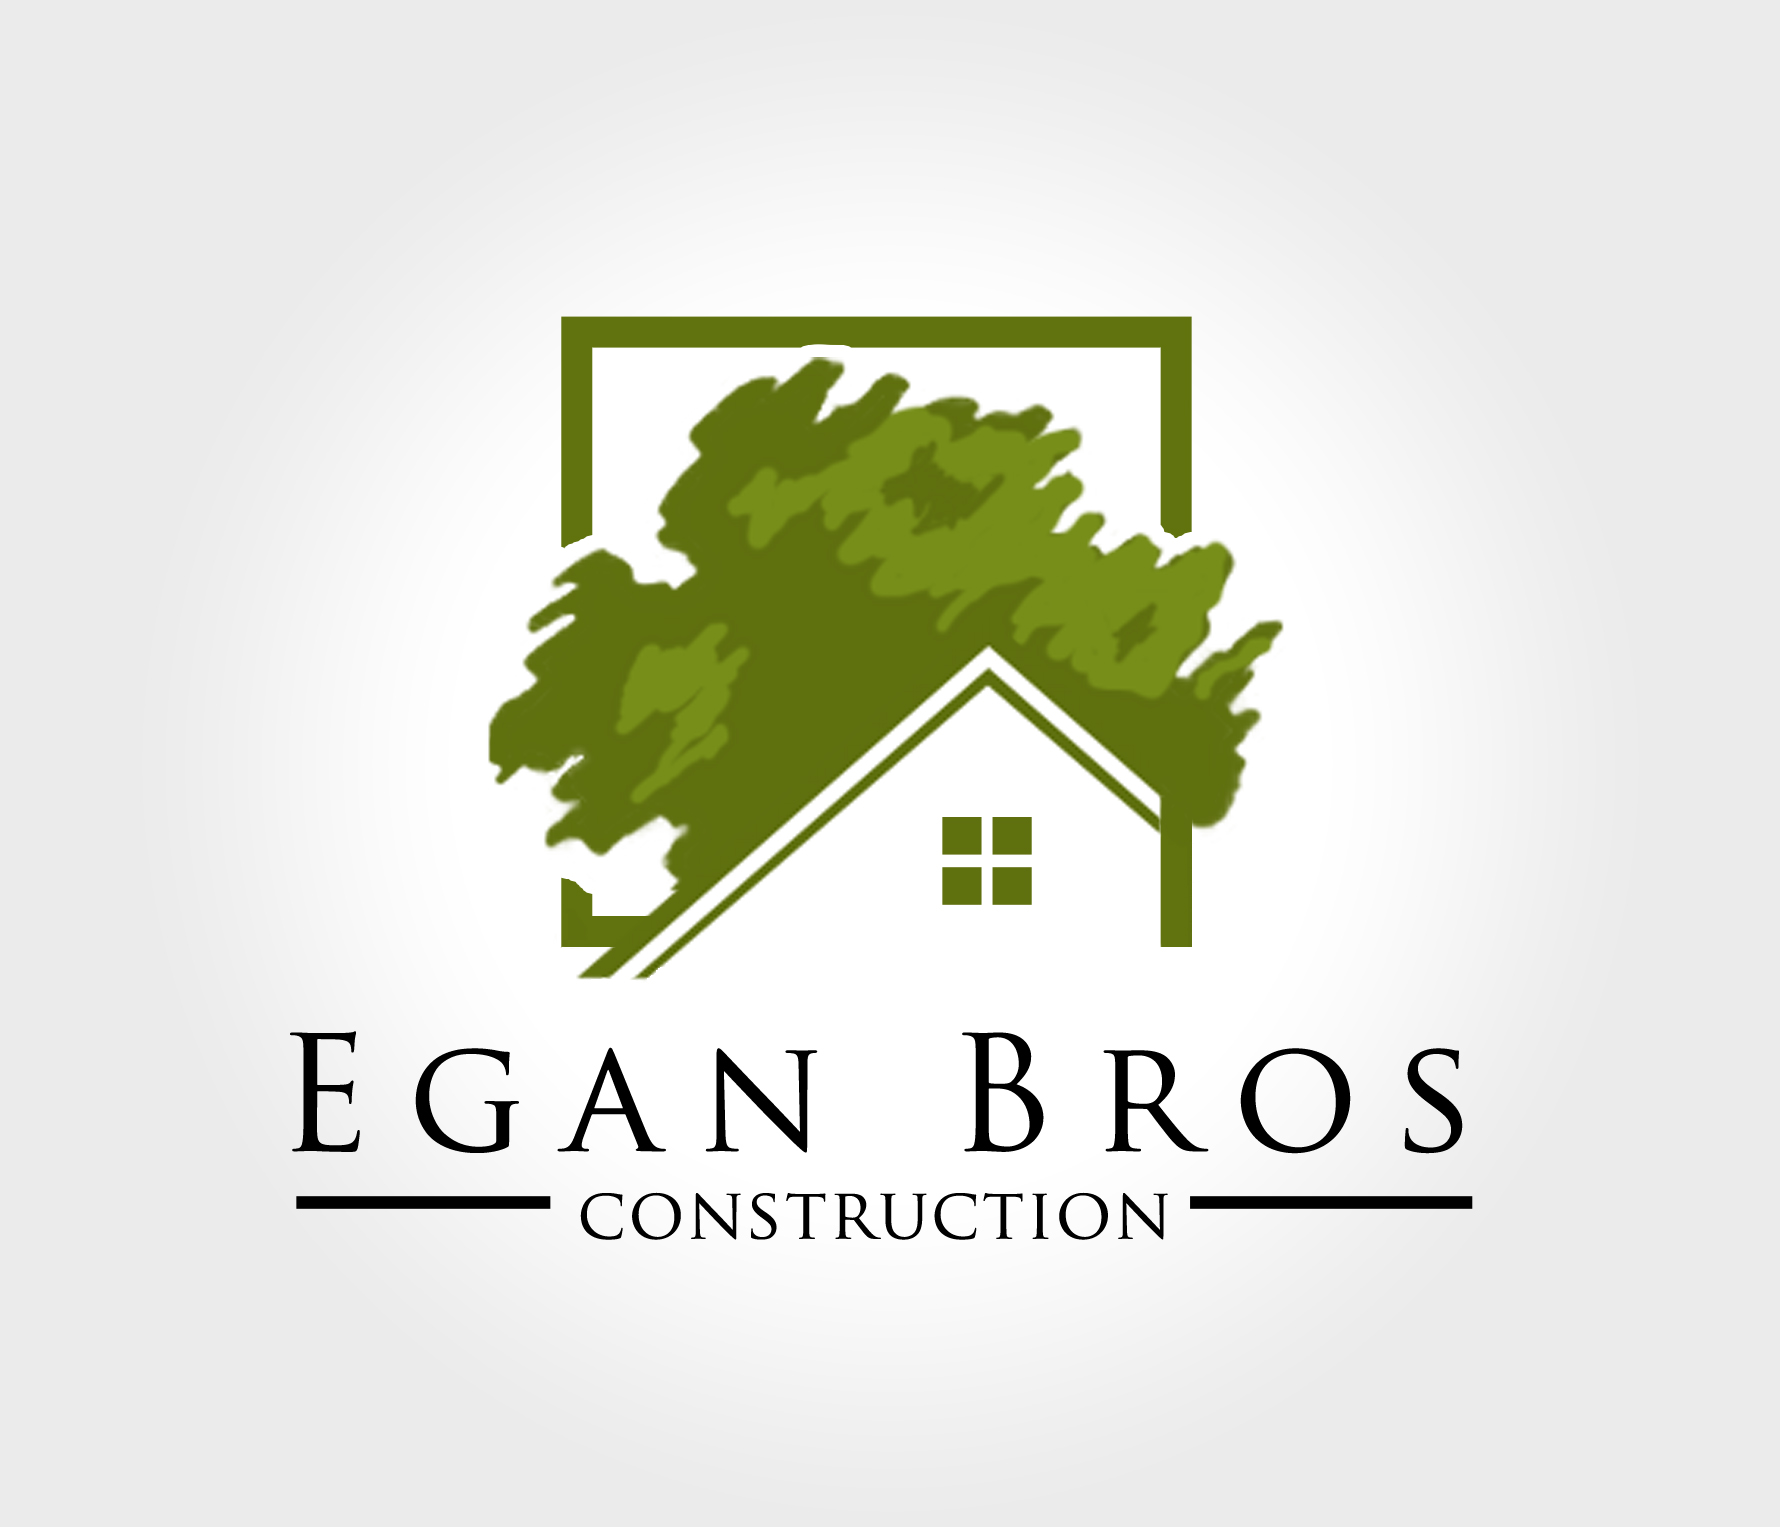 Egan Bros Construction Ltd